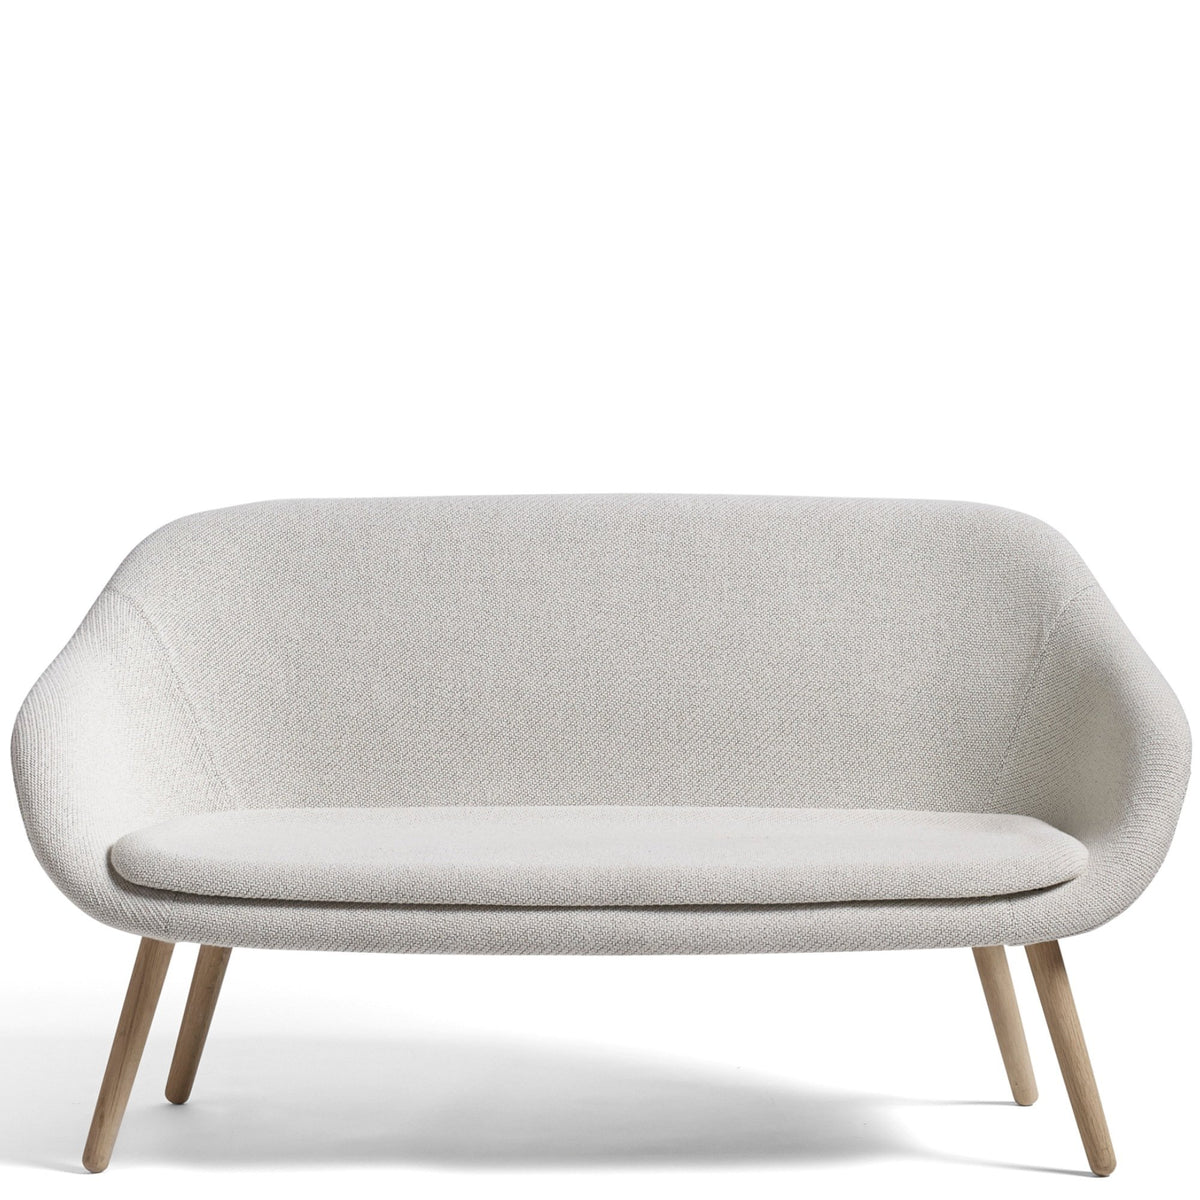 About A Sofa - AAL Sofa - Coda Fabric with Clear Lacquered Oak Legs